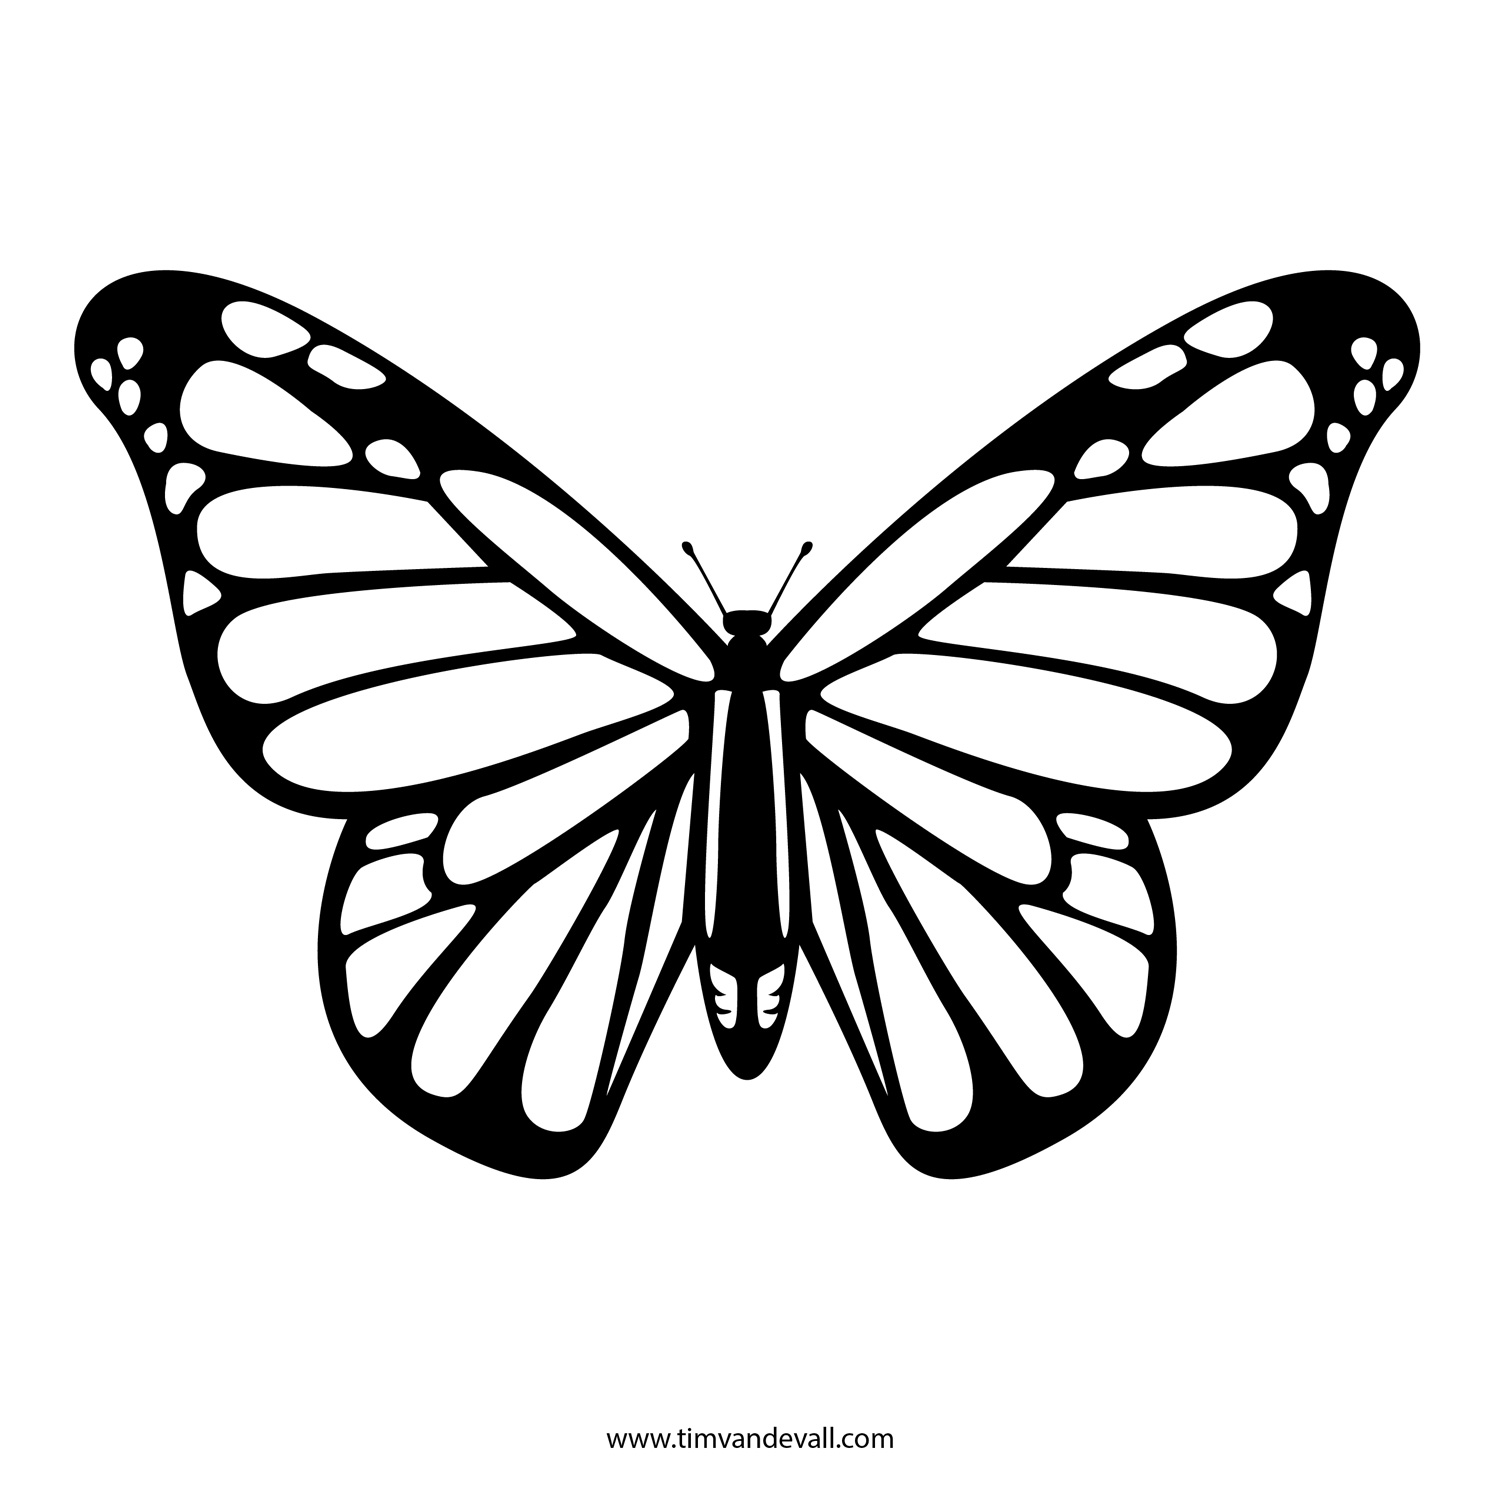 Free Butterfly Stencil | Monarch Butterfly Outline and ...